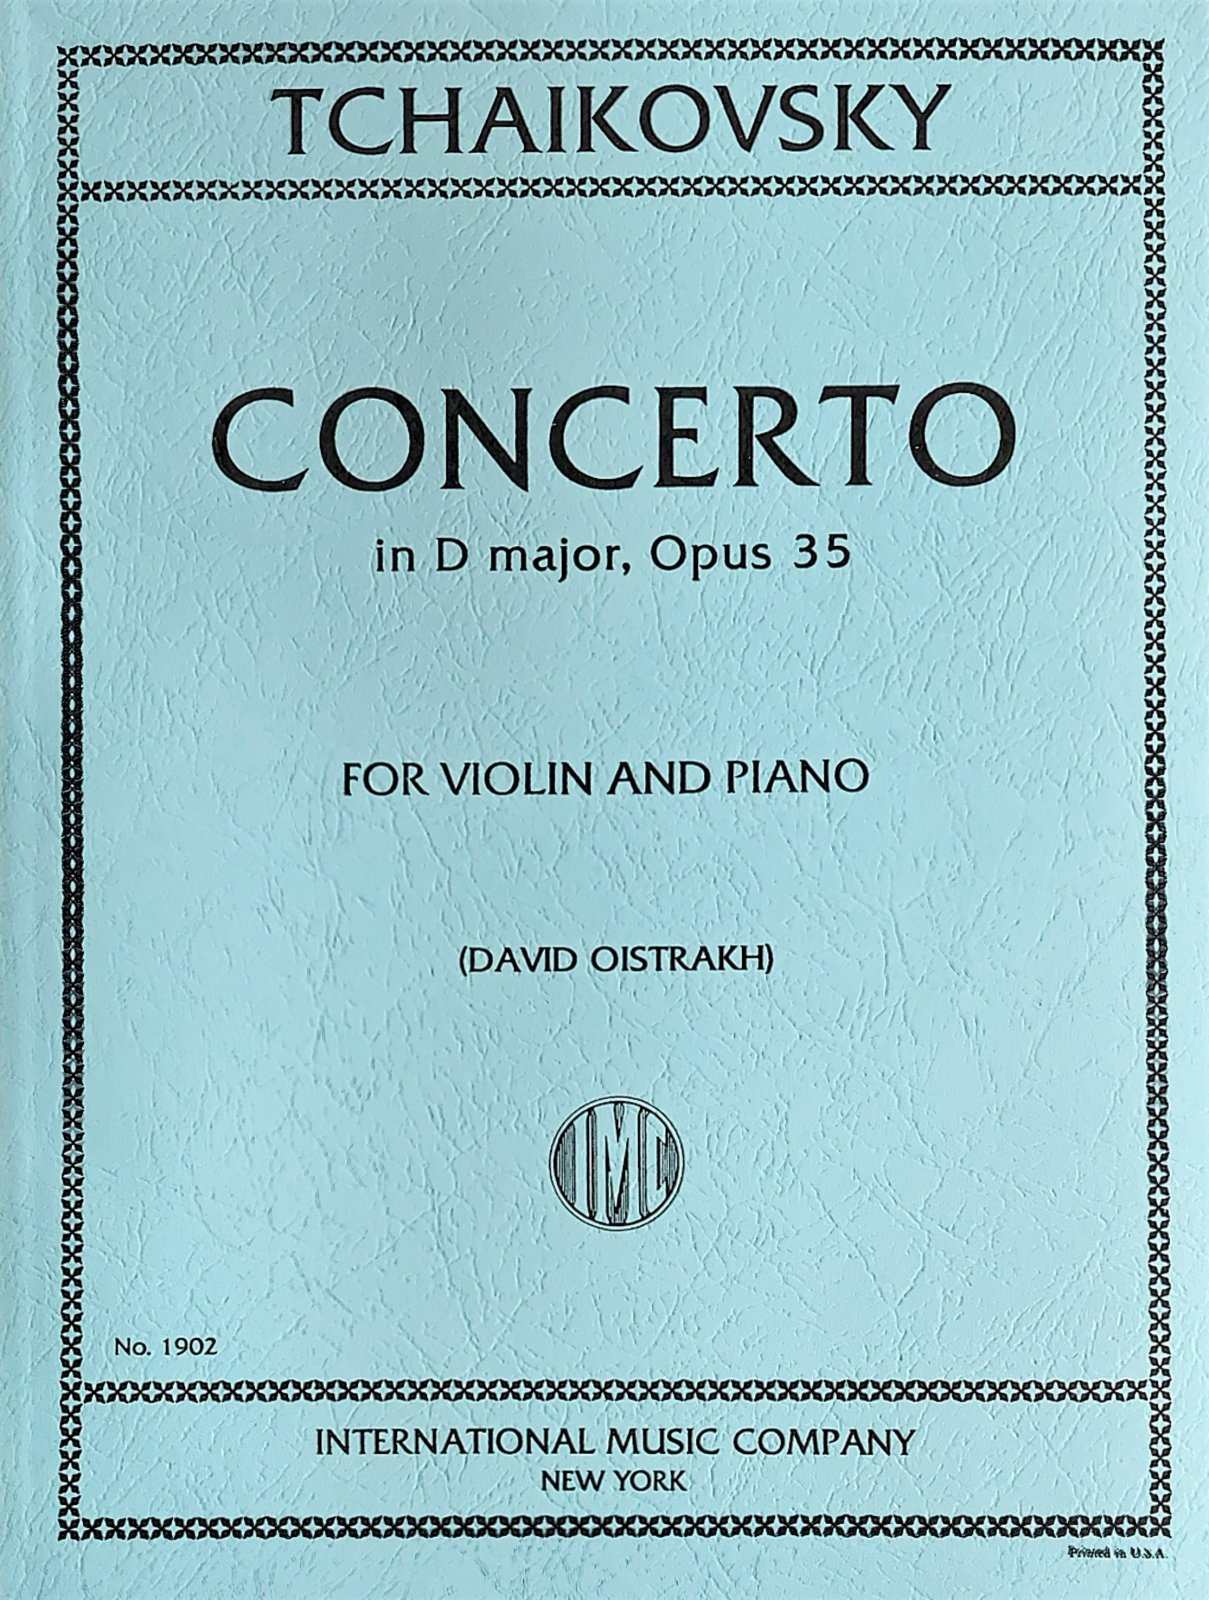 Concerto in D Major Op 35 - Tchaikovsky - Violin and Piano - Oistrakh - International